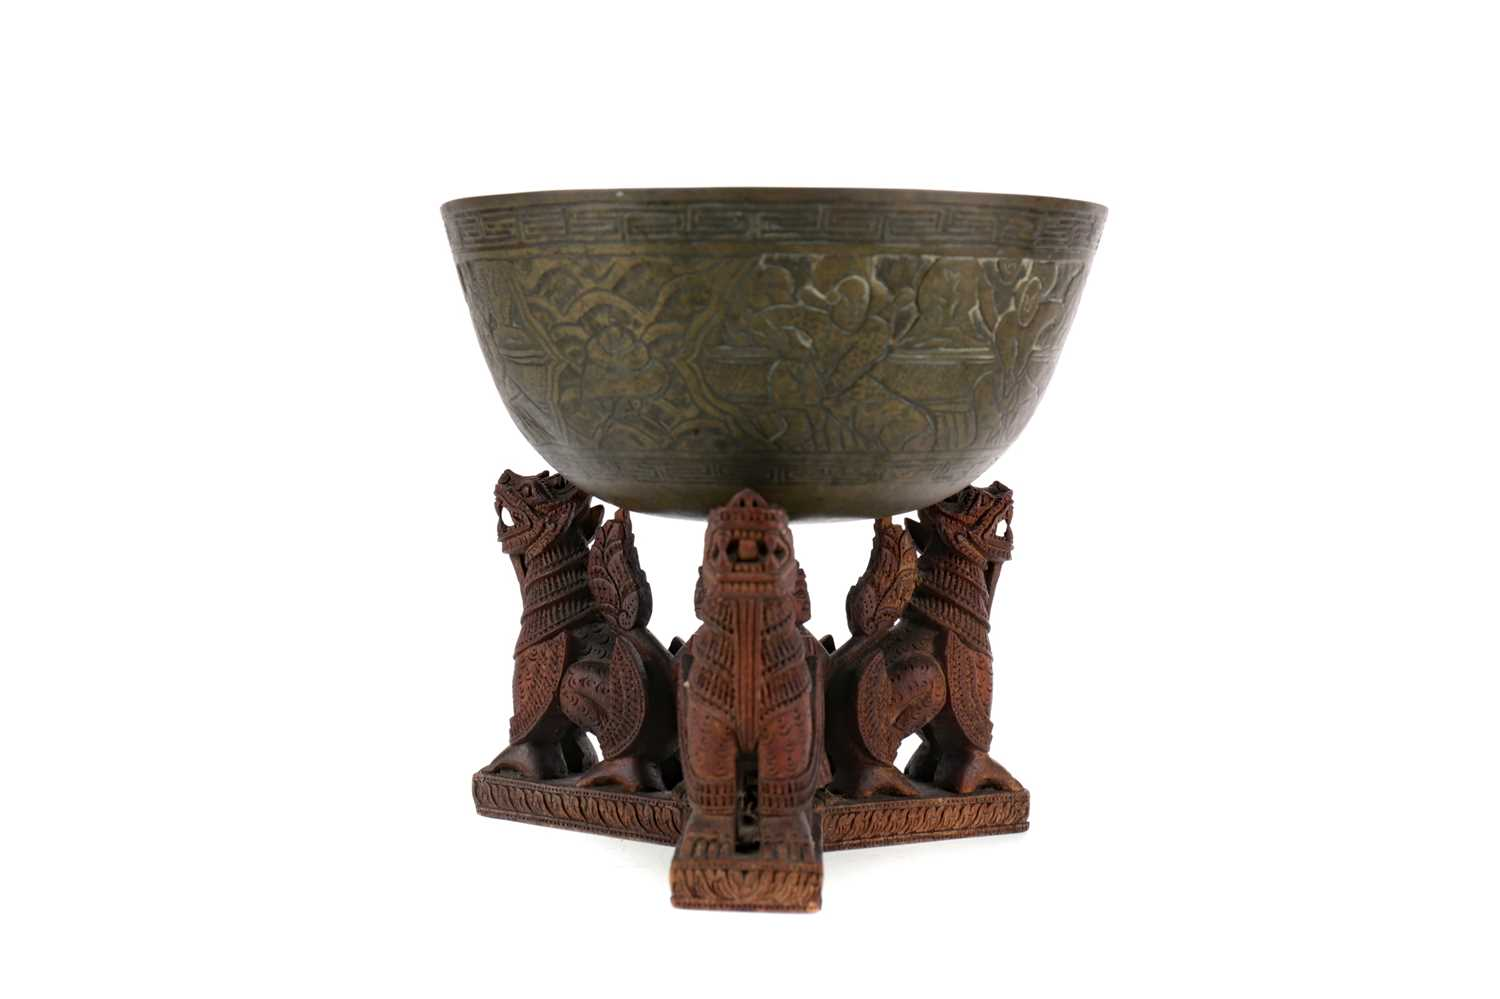 Lot 744 - AN EARLY 20TH CENTURY CHINESE BRONZE BOWL